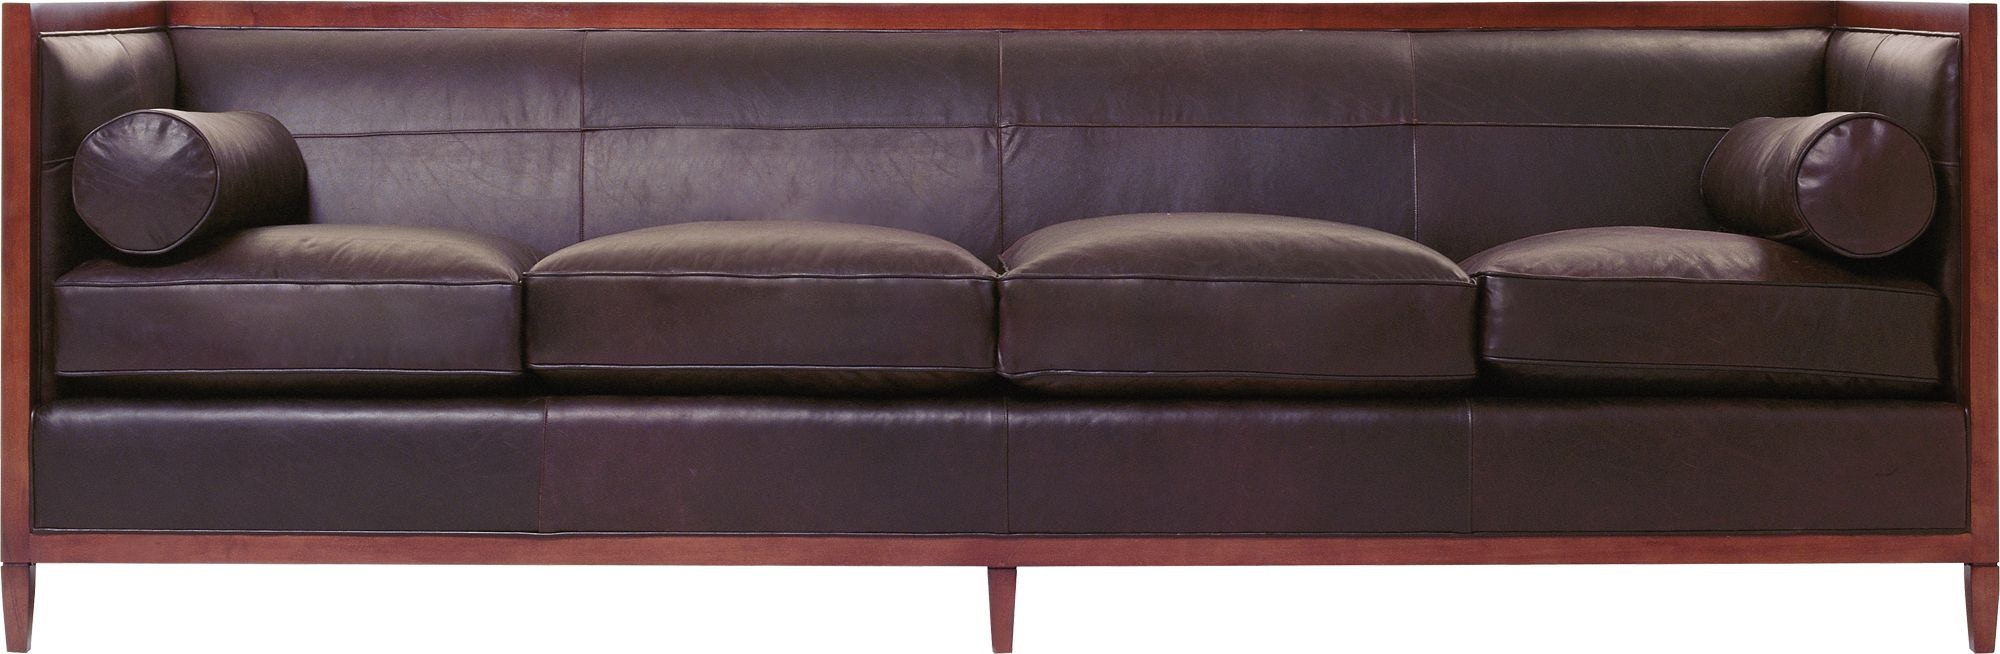 archetype furniture. Baker Furniture Classics Upholstery Archetype Wood Banded Sofa 6370-98 T